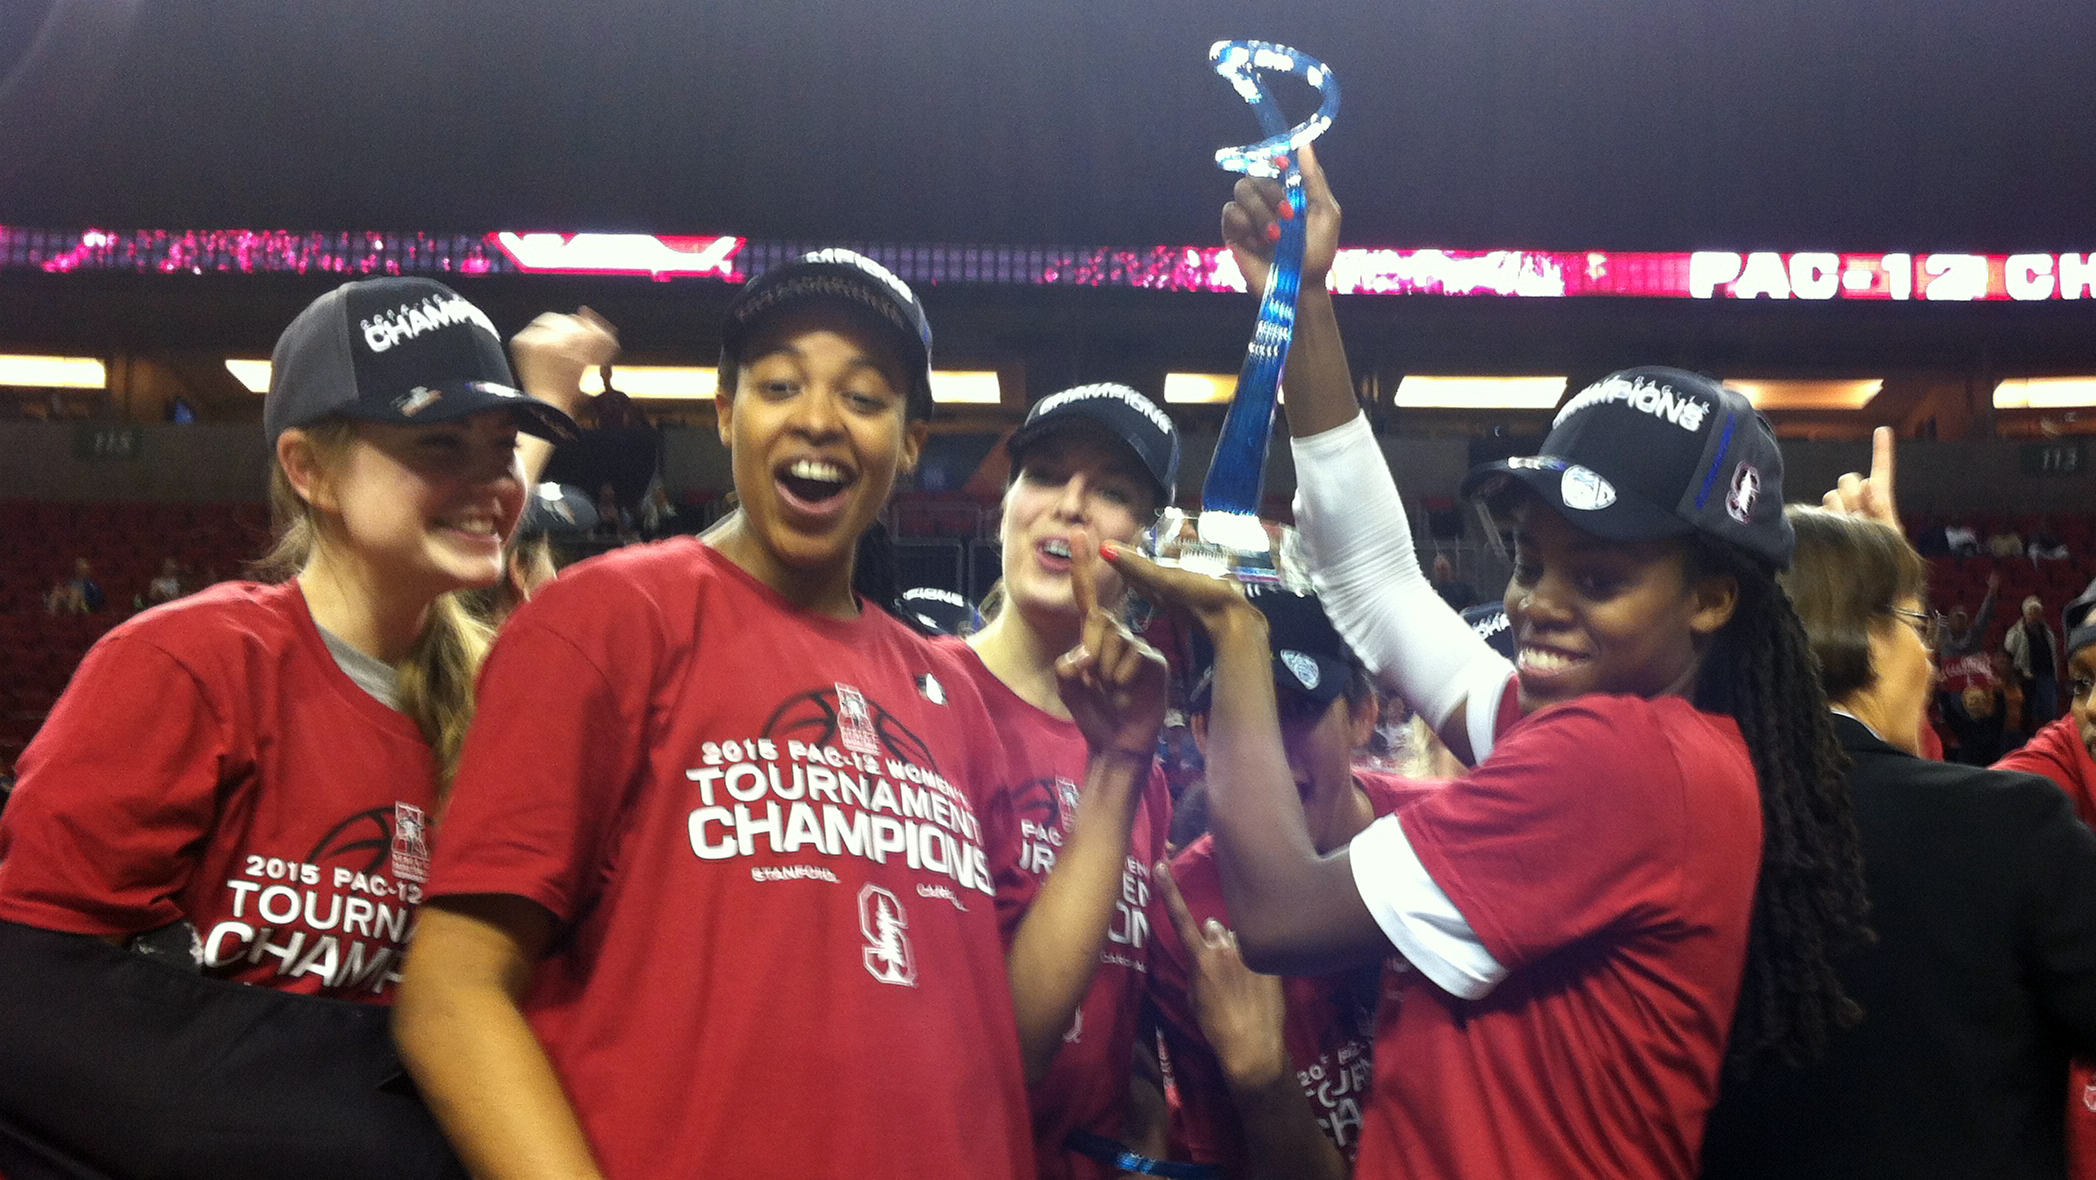 Stanford outlasts Cal 61-60 to win the Pac-12 tournament championship for the 11th time